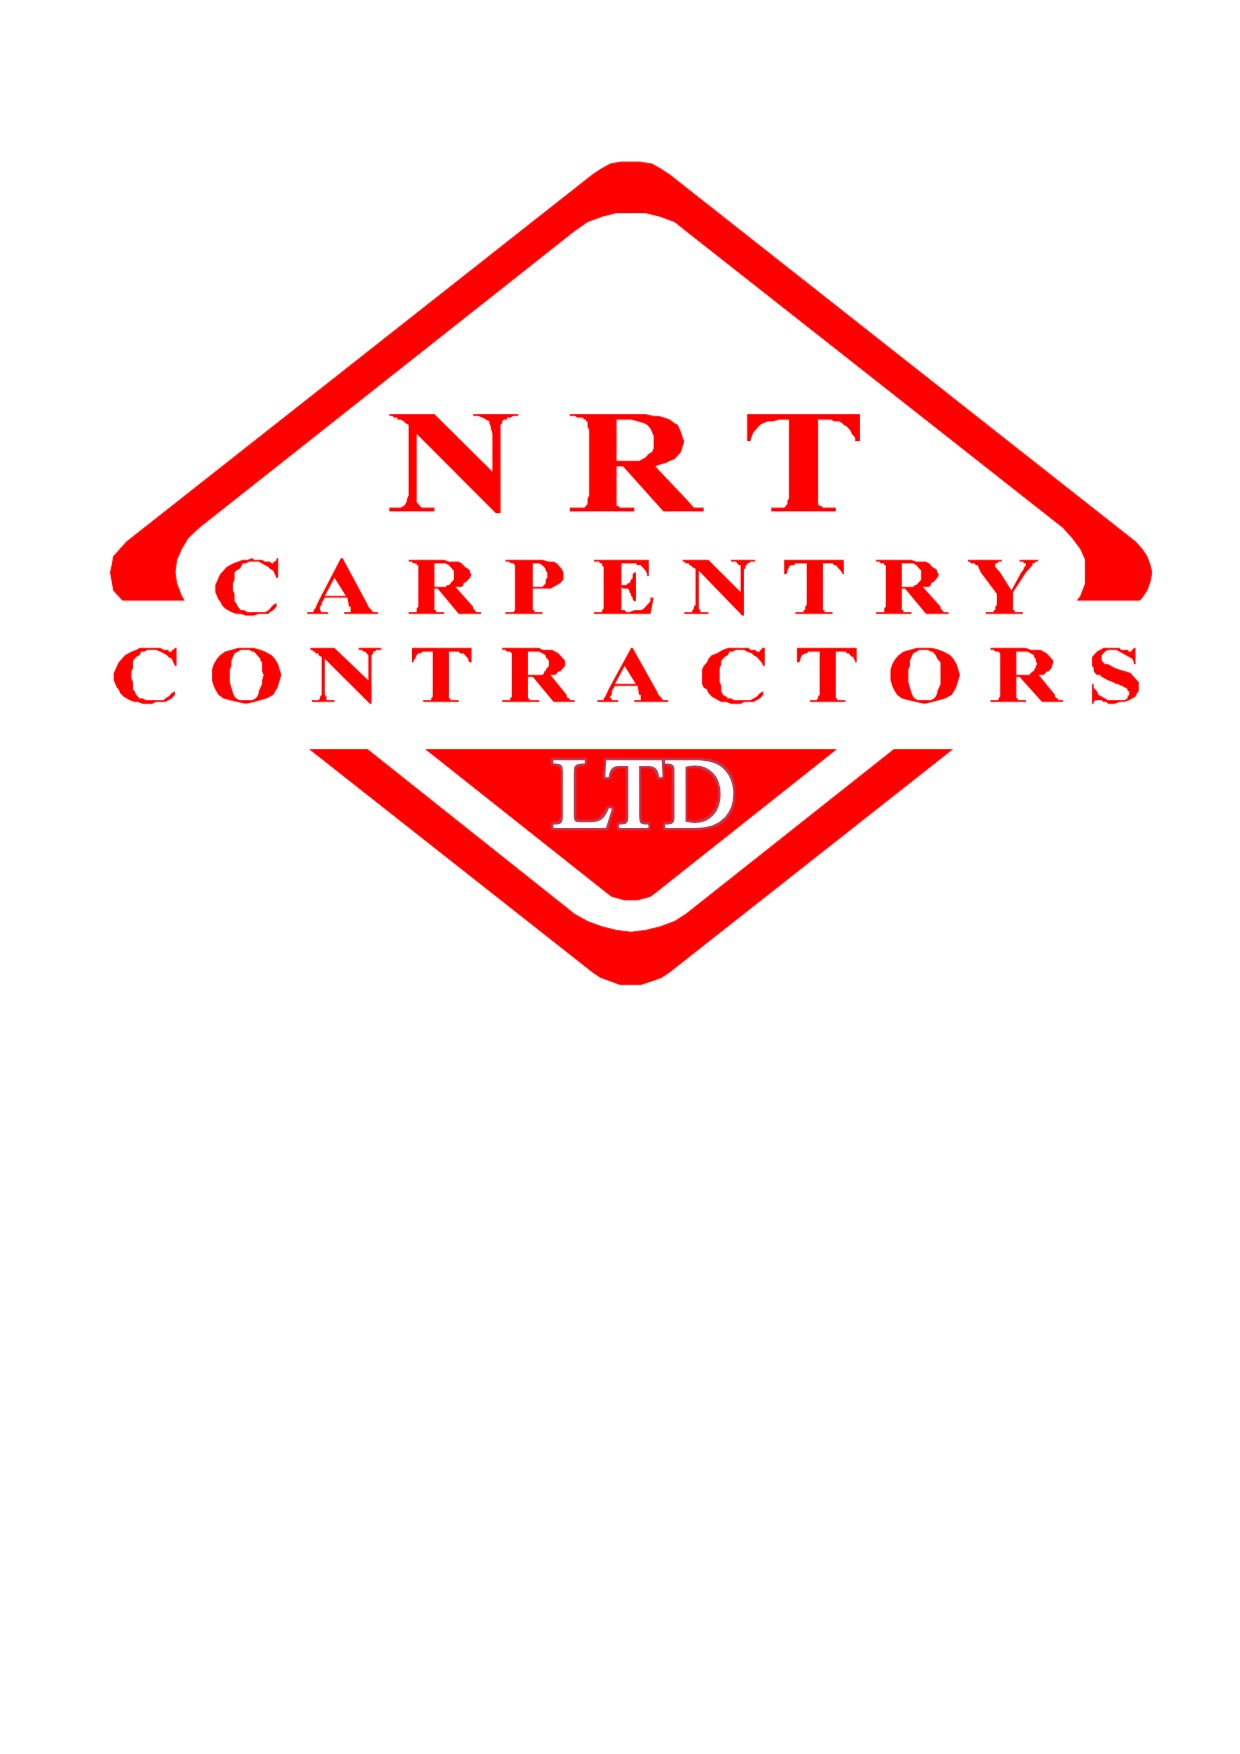 NRT Carpentry Contractors Ltd